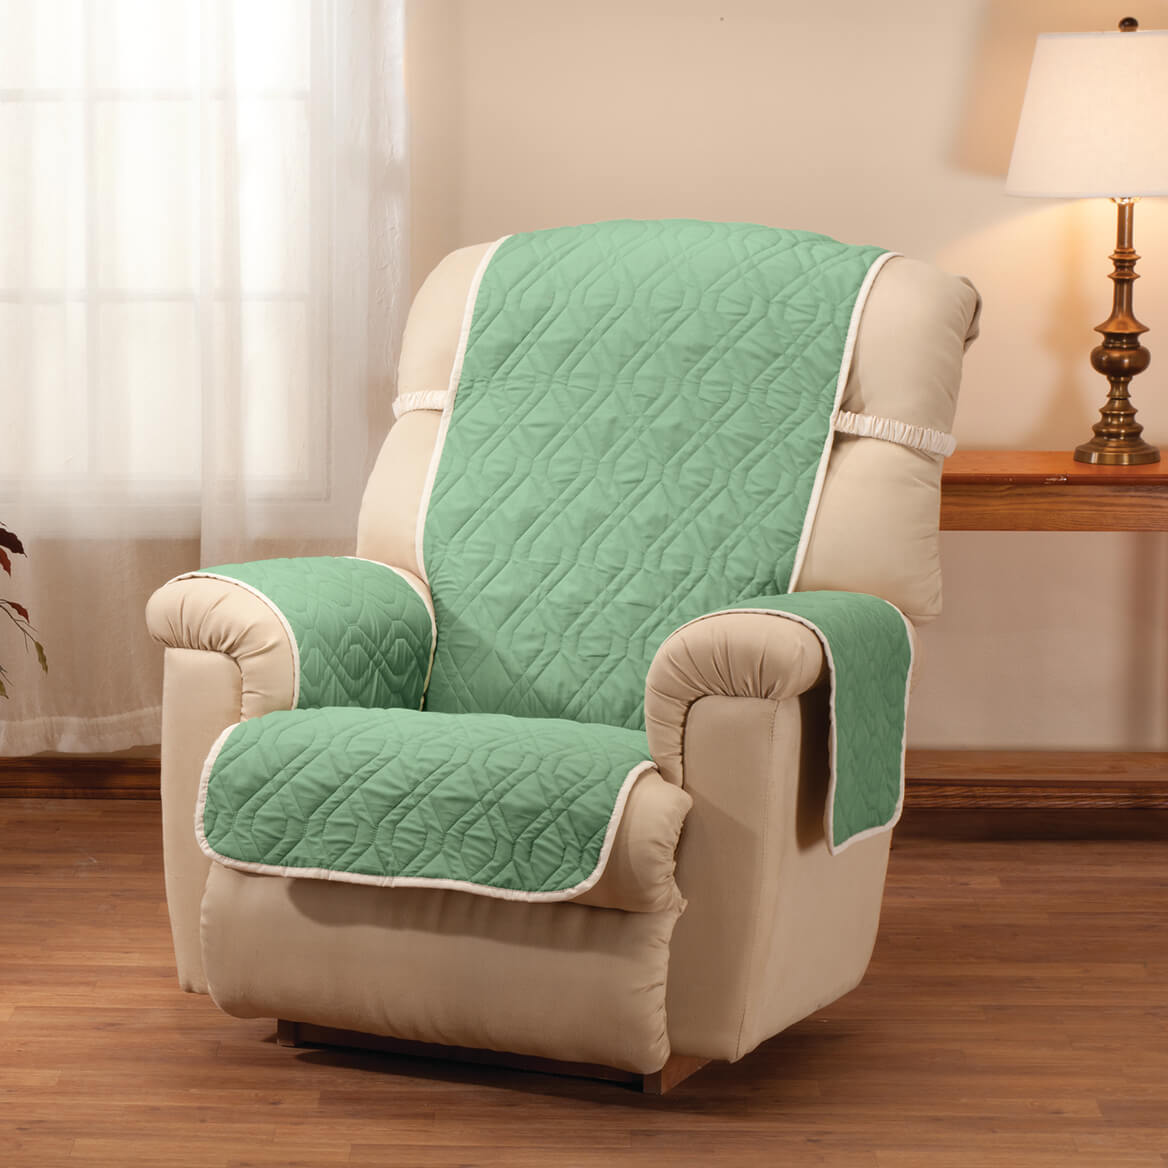 waterproof chair covers for recliners office chairs big and tall deluxe reversible recliner cover miles